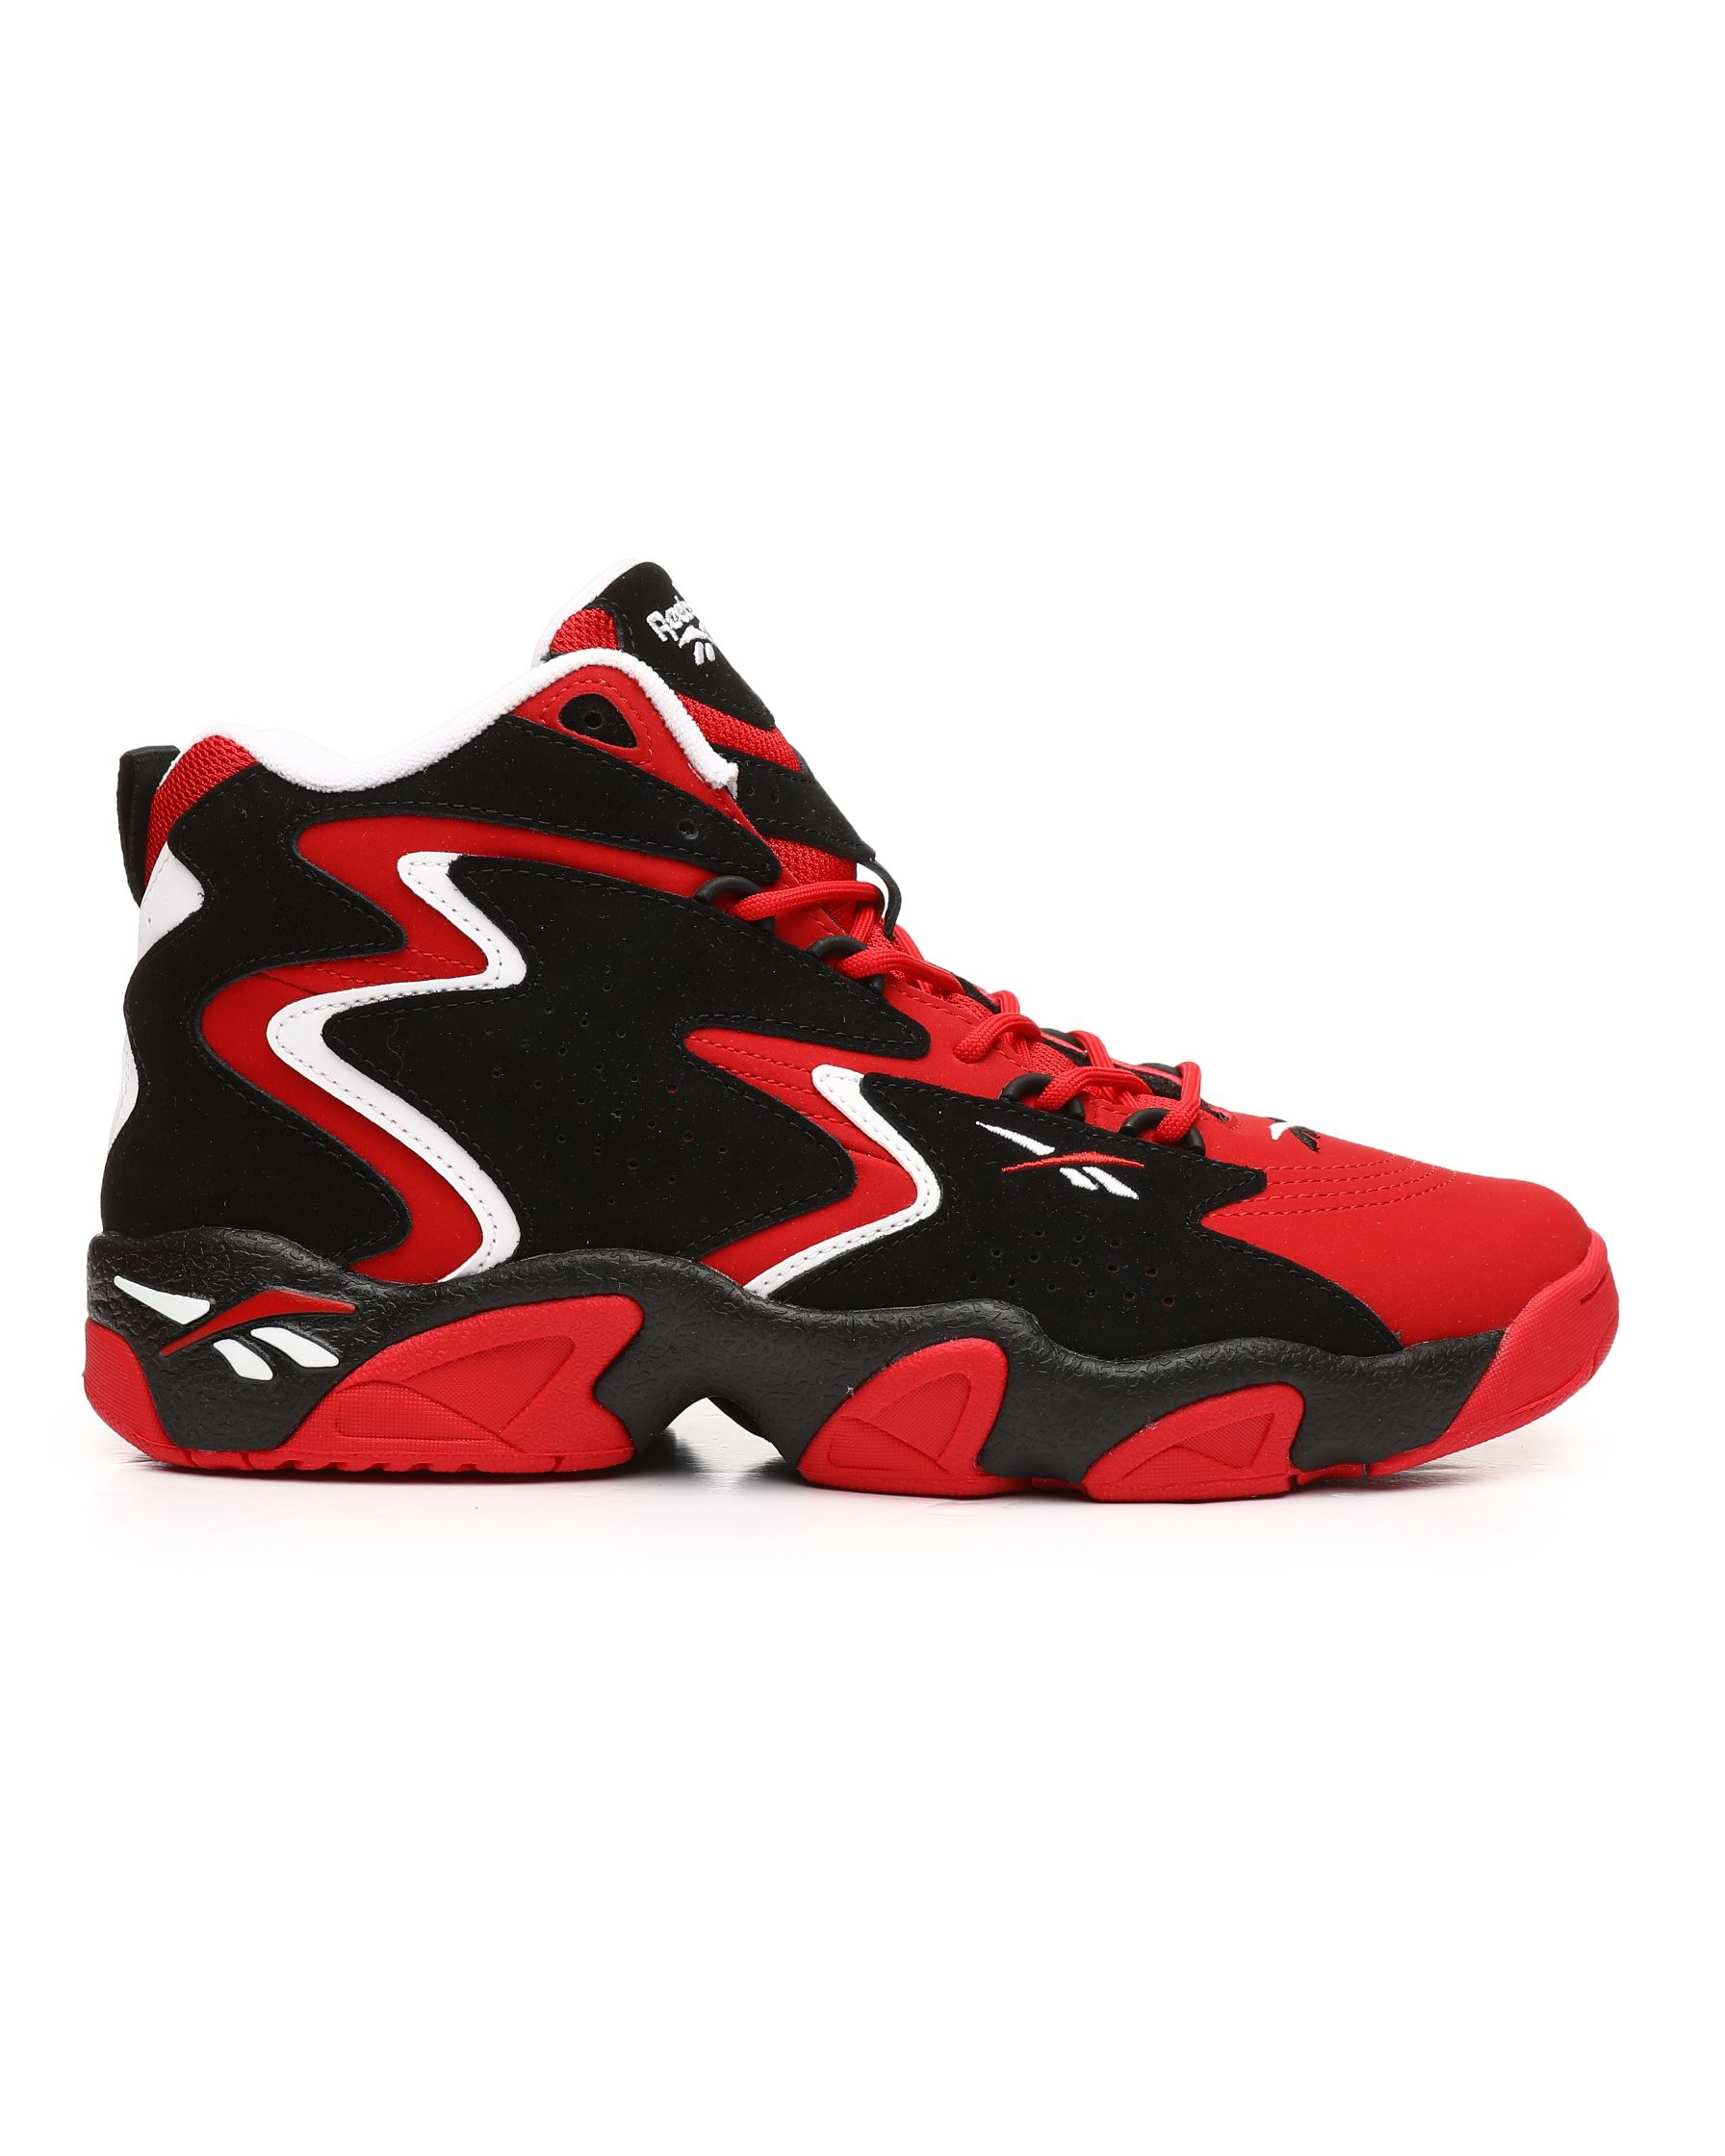 online retailer 114da 75584 Mobius OG MU Sneakers from Reebok at DrJays.com | Men's Footwear in ...